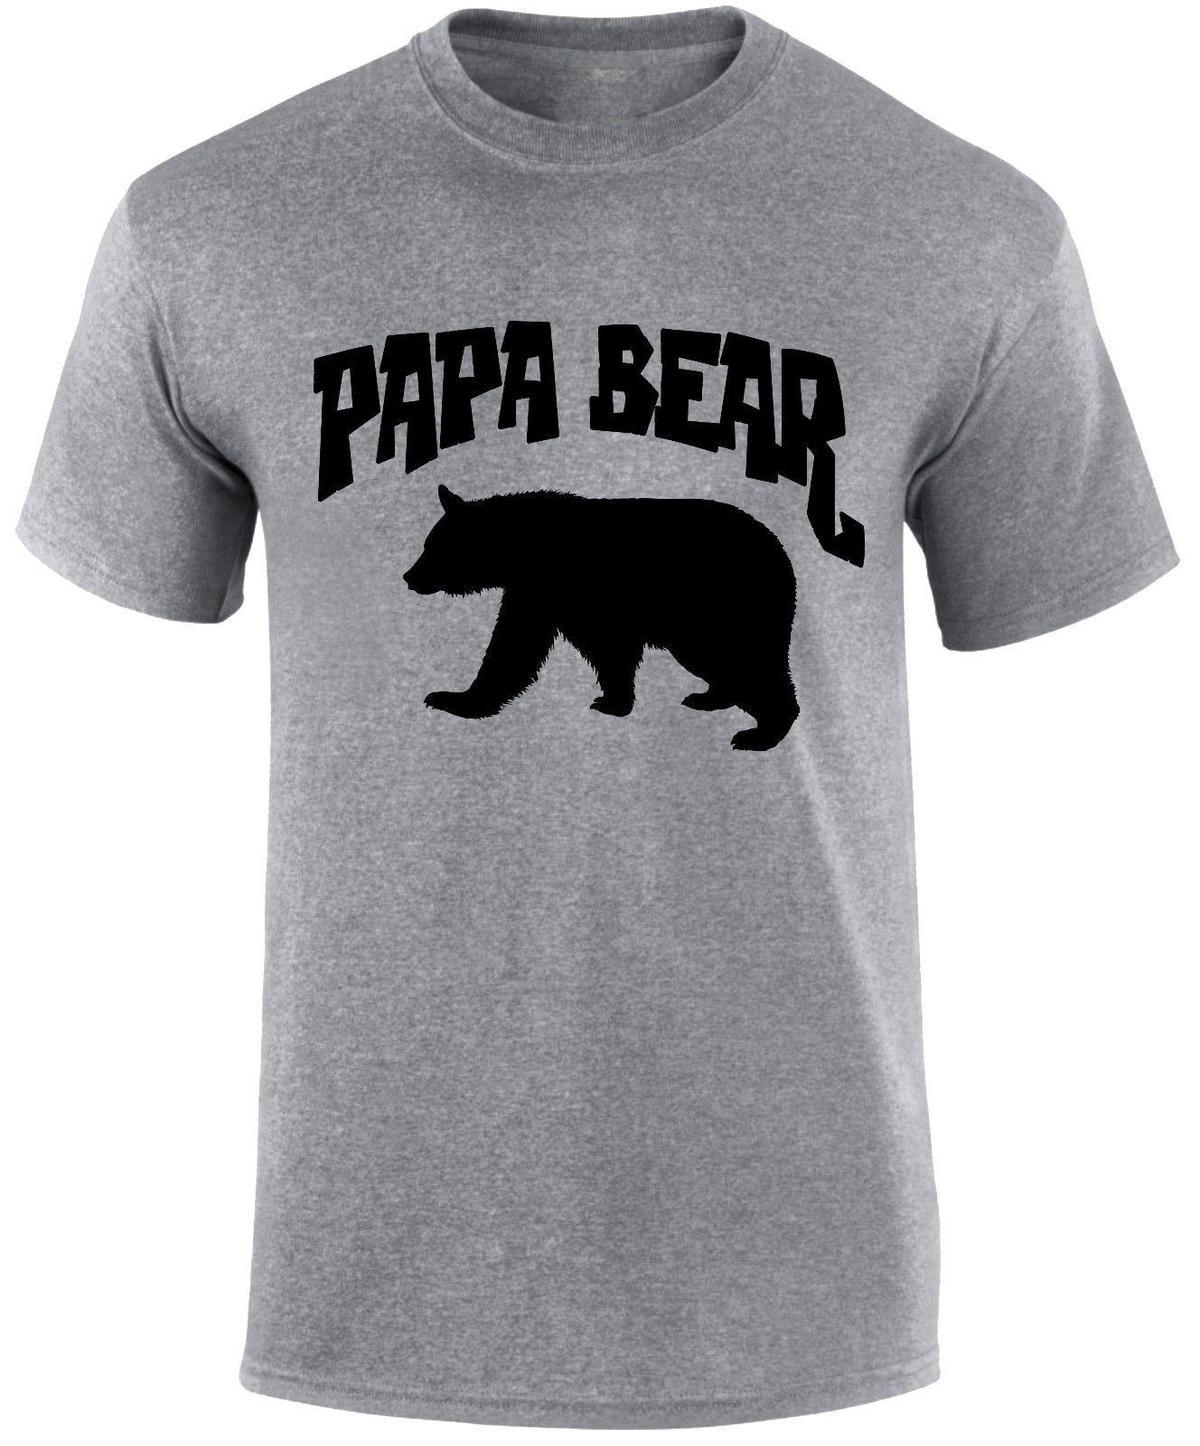 04126d5d40f5 Papa Bear Dad Father'S Day Man Daddy Slogan Funny Men'S T Shirt Top Gift  Shirts Design Online T Shirts From Amesion93, $12.08  DHgate.Com